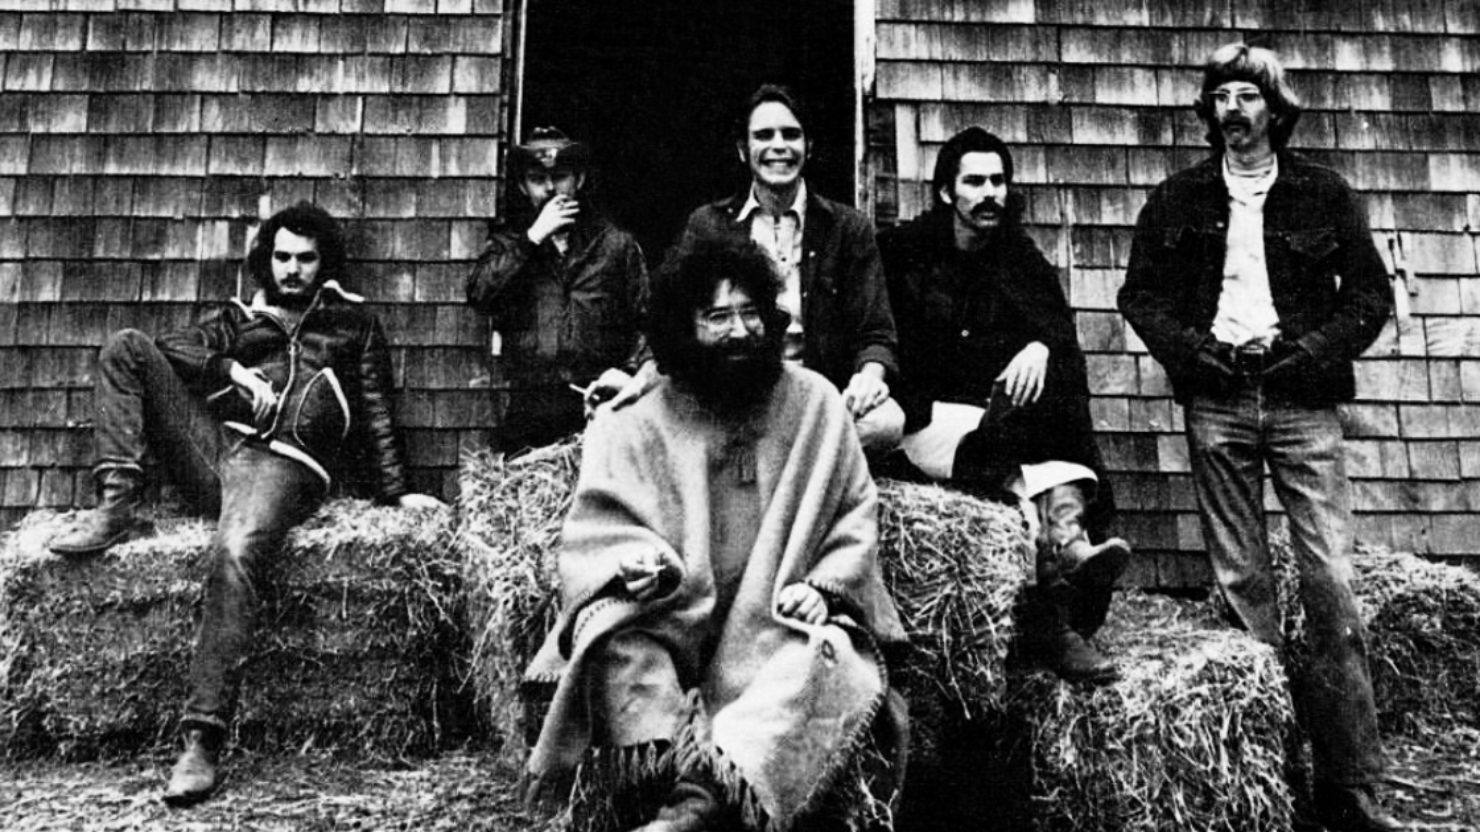 The Grateful Dead Welcomes The Beach Boys At Fillmore East On This Date In 1971